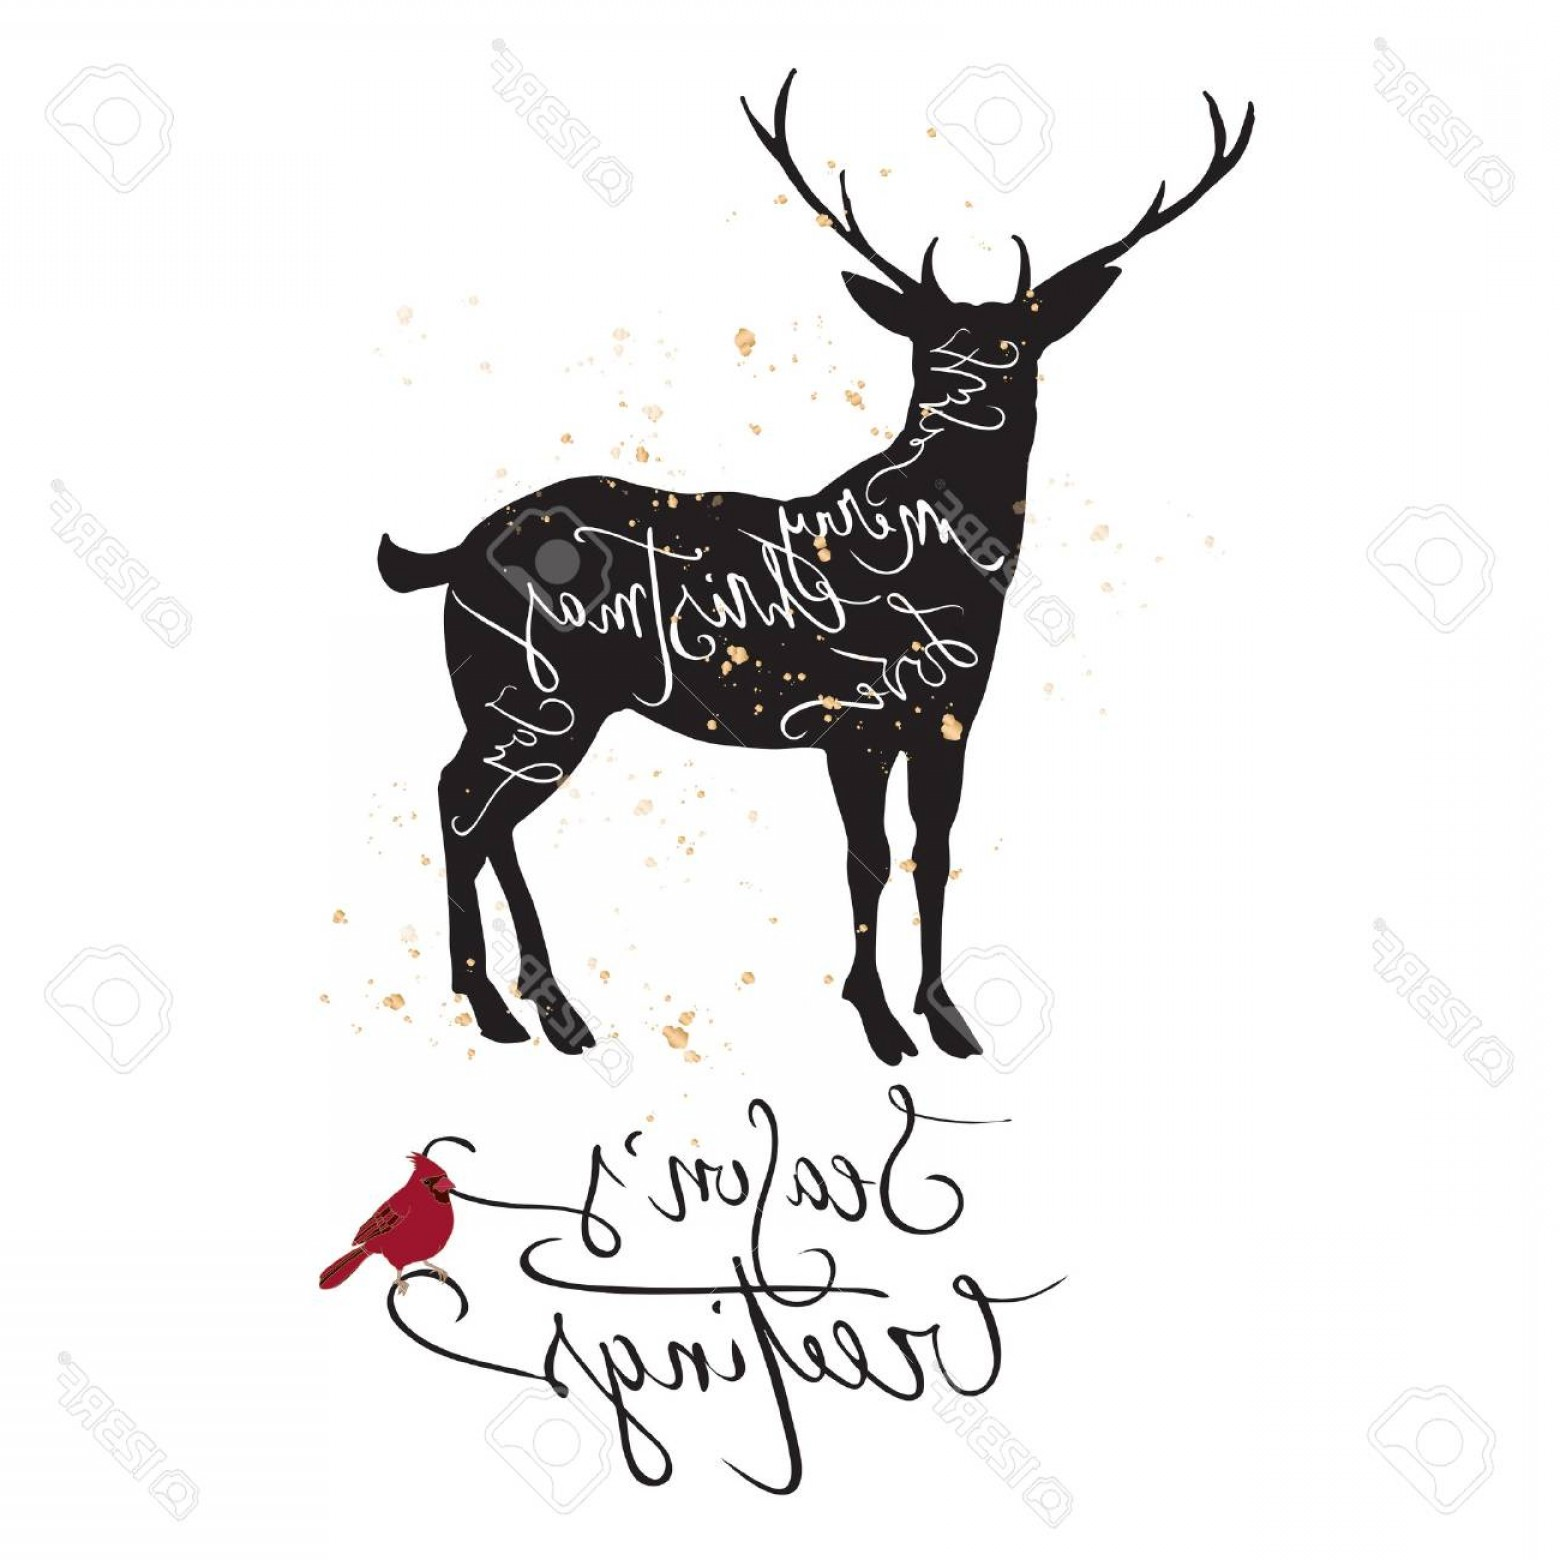 Black And White Holiday Deer Vector: Photostock Vector Christmas Template With Deer Cardinal Bird And Holiday Hand Drawn Brush Lettering Great For Greeting